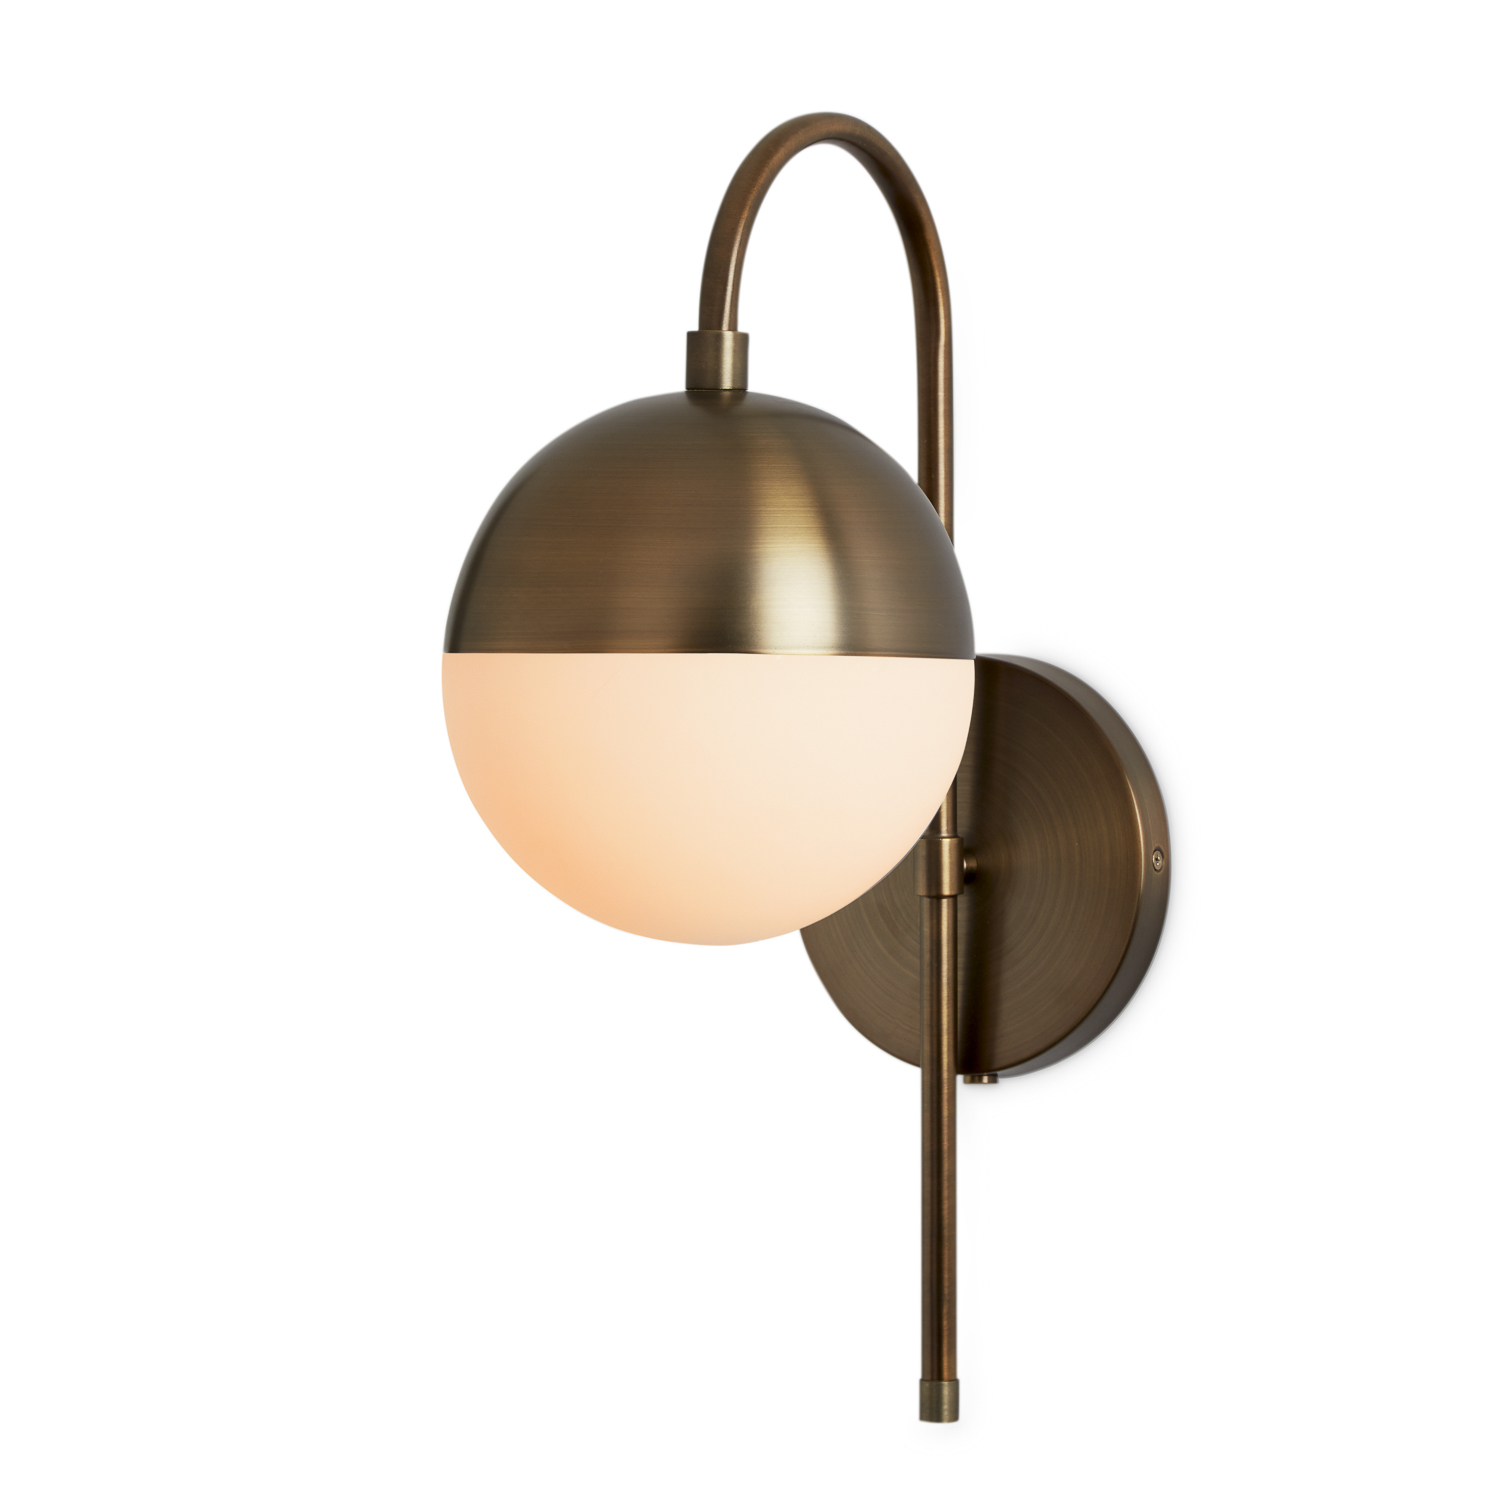 Drawstring Wall Lights : Lights.com Wall Lights Powell Wall Sconce with Hooded White Globe, Bronze